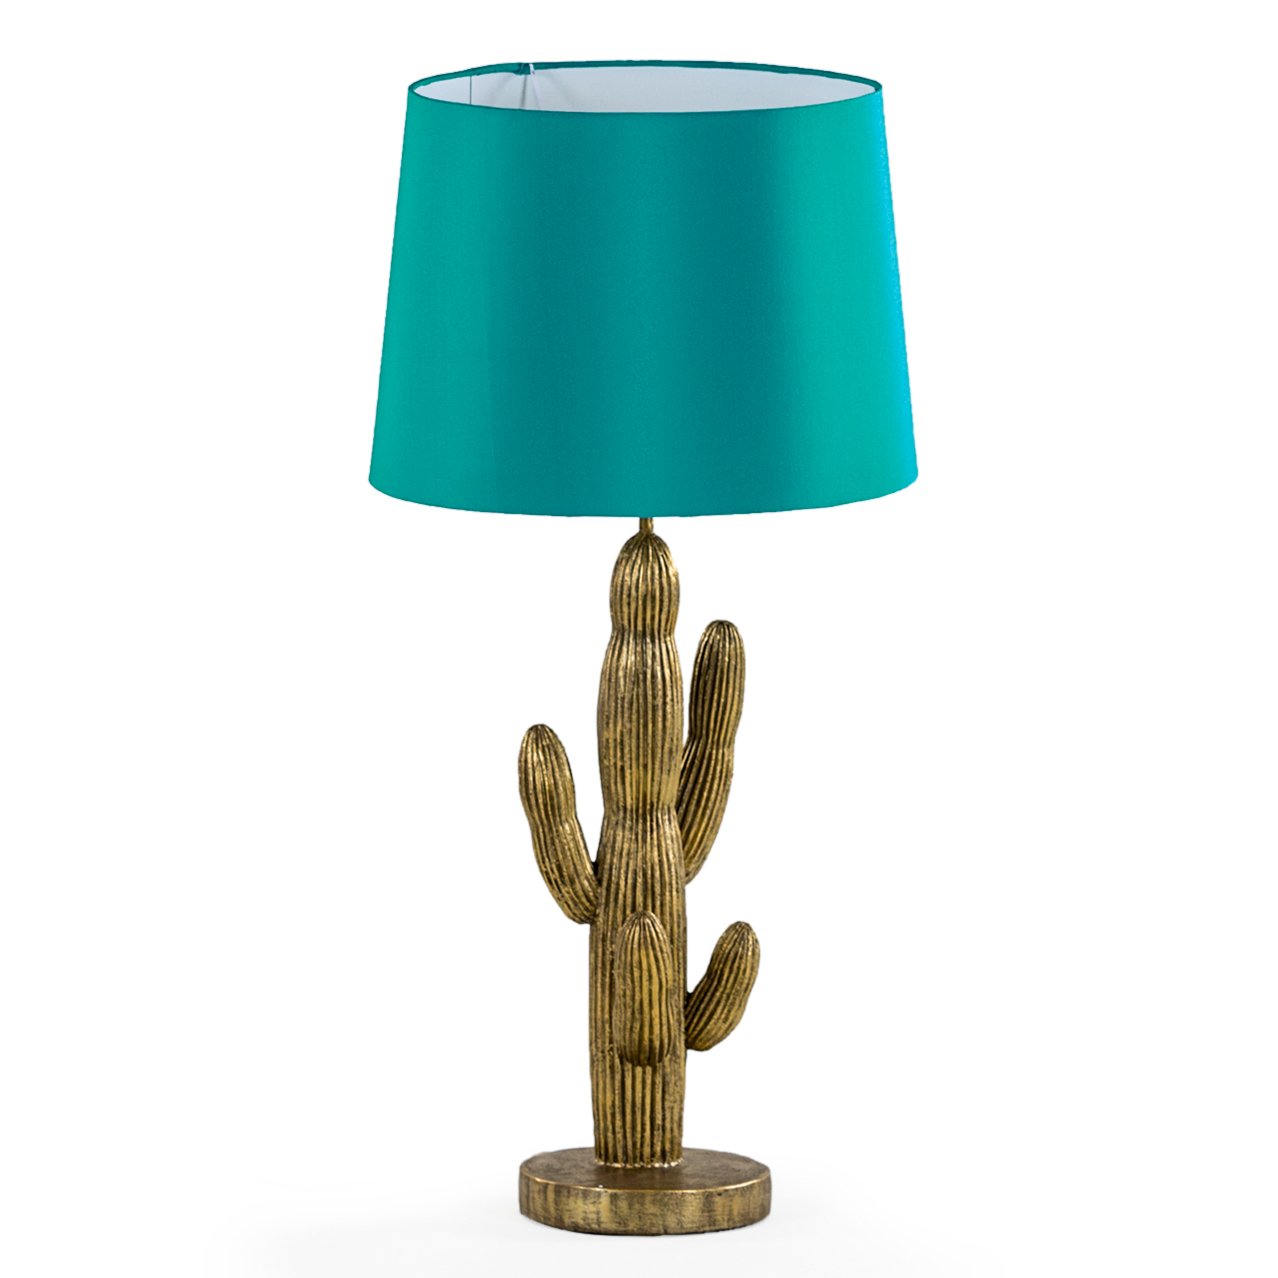 Cactus Lamp In Antique Gold With Teal French Drum Shade